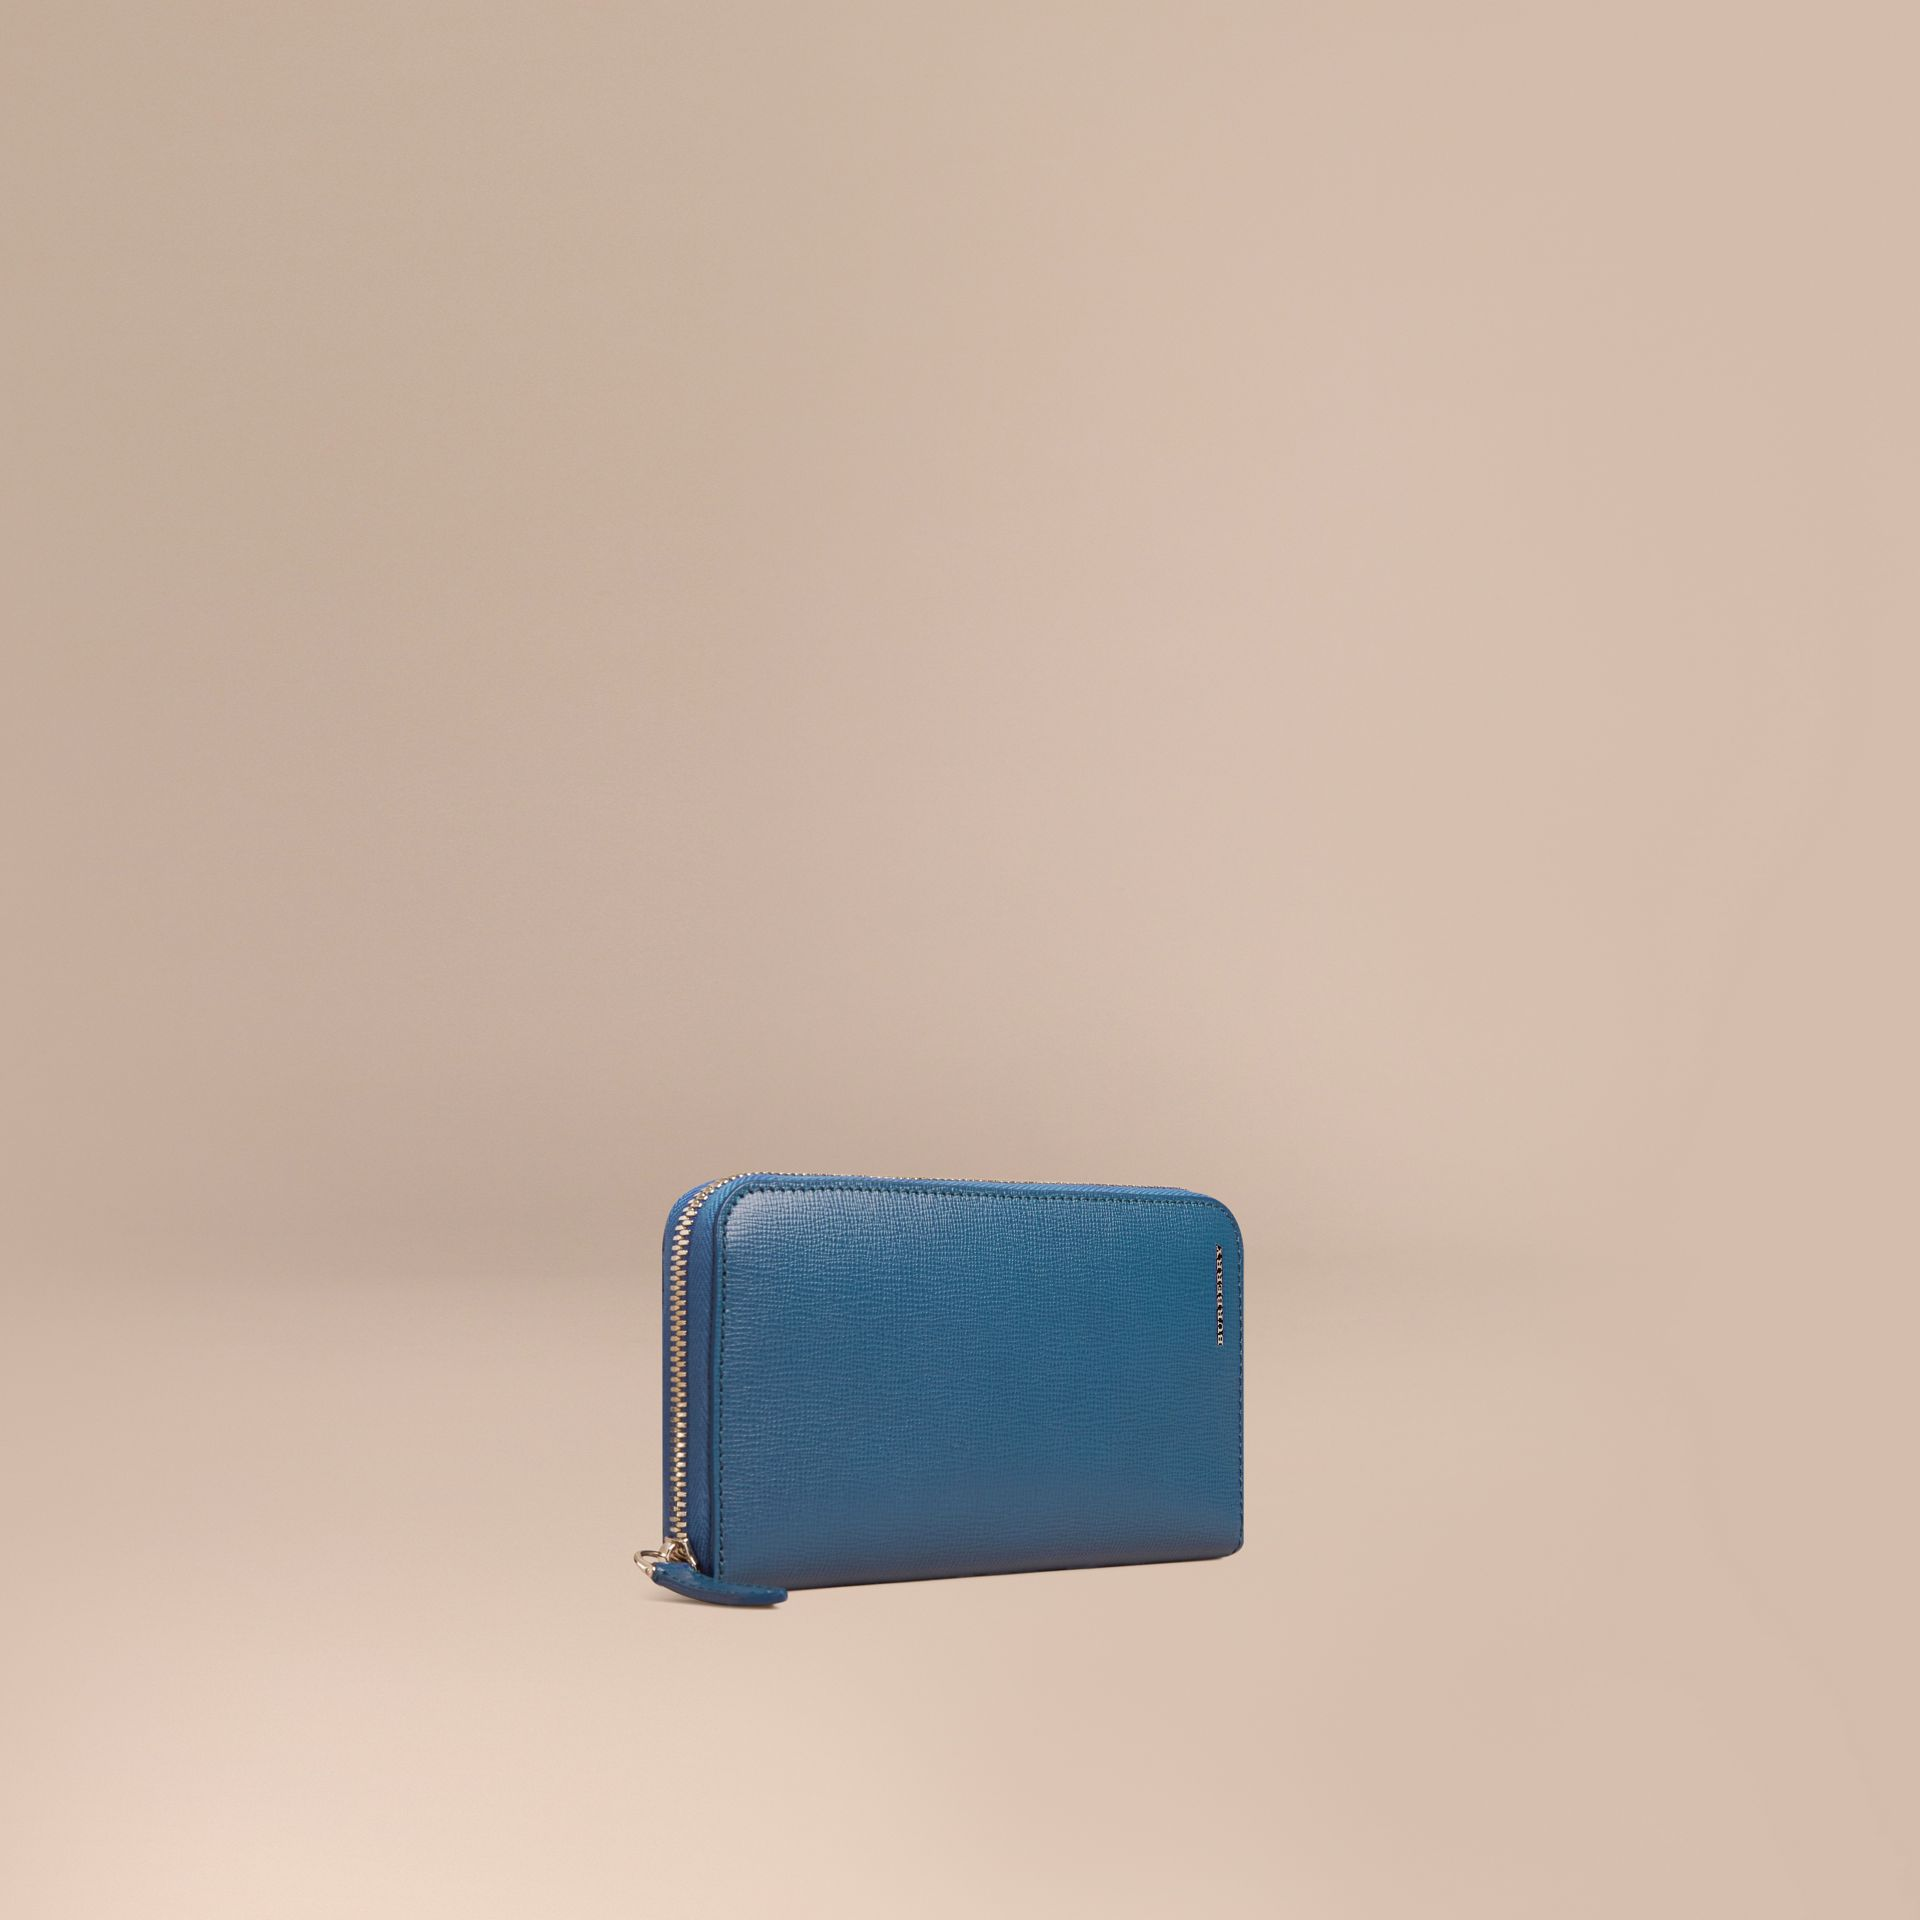 Mineral blue London Leather Ziparound Wallet Mineral Blue - gallery image 1